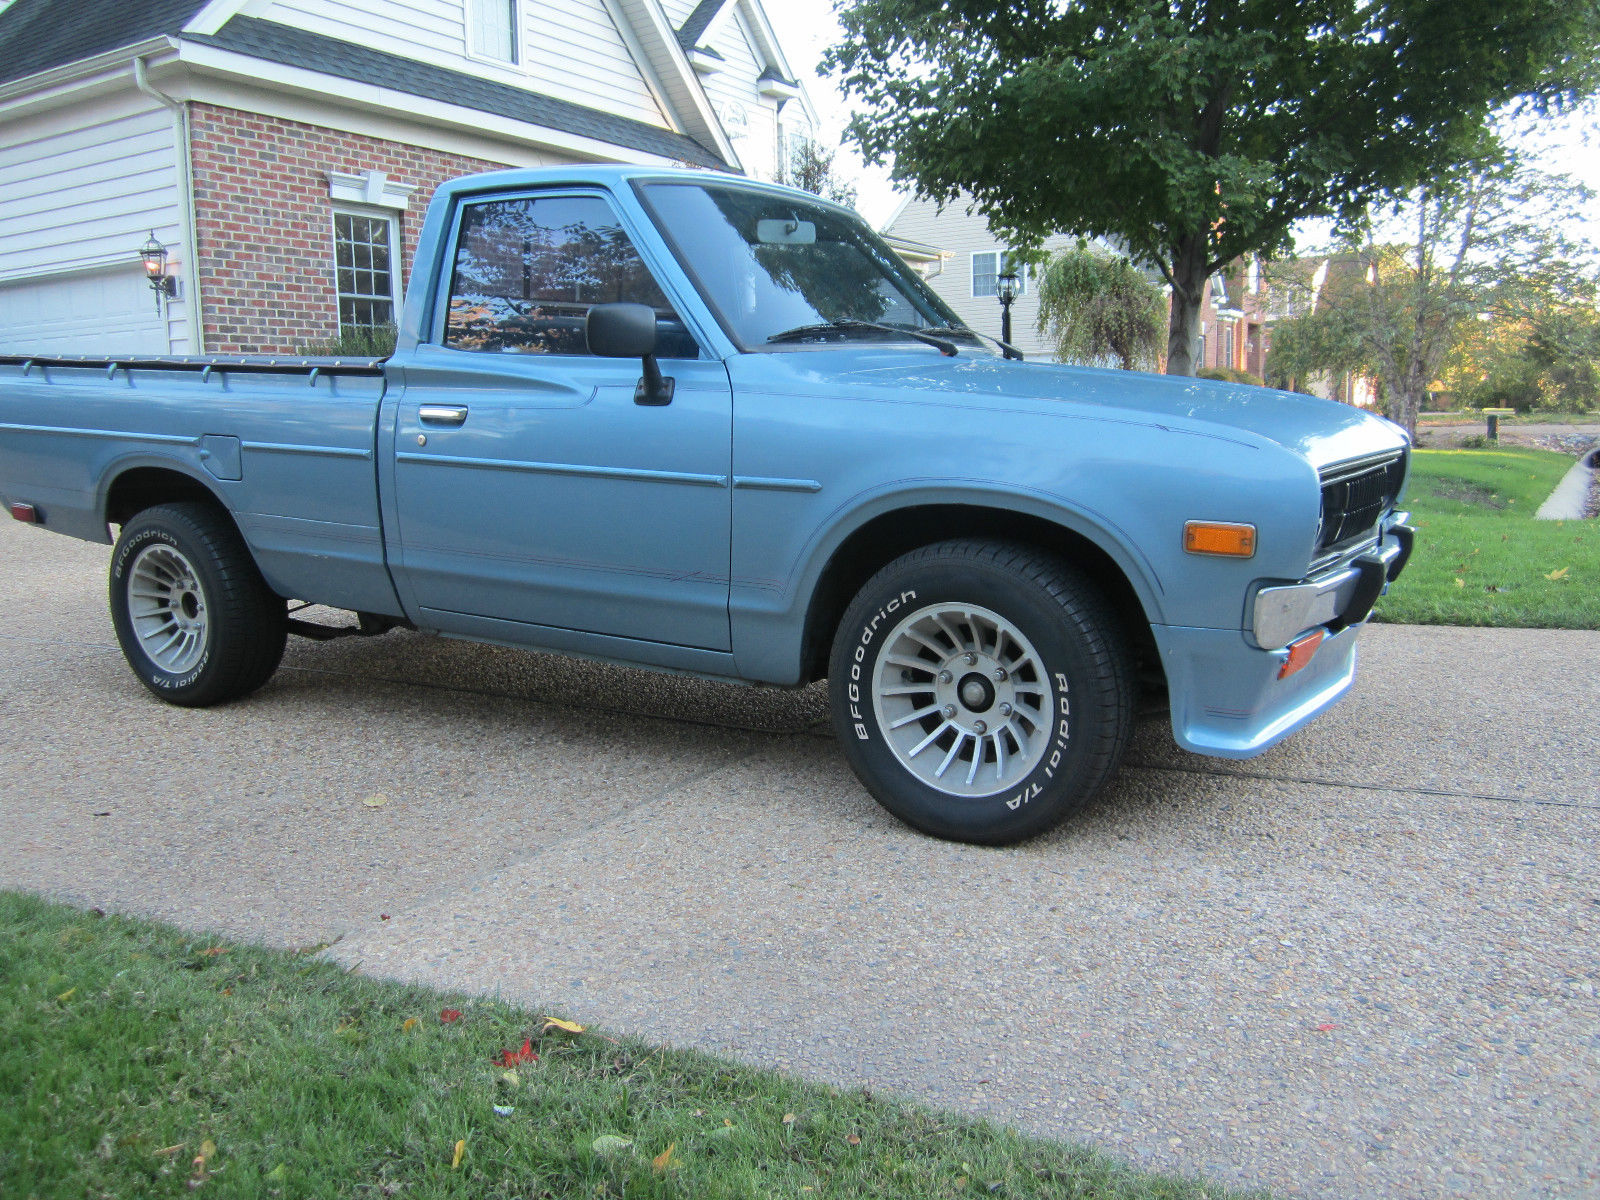 1979 Datsun 620 Pickup Rare Color Rare Options - Classic ...